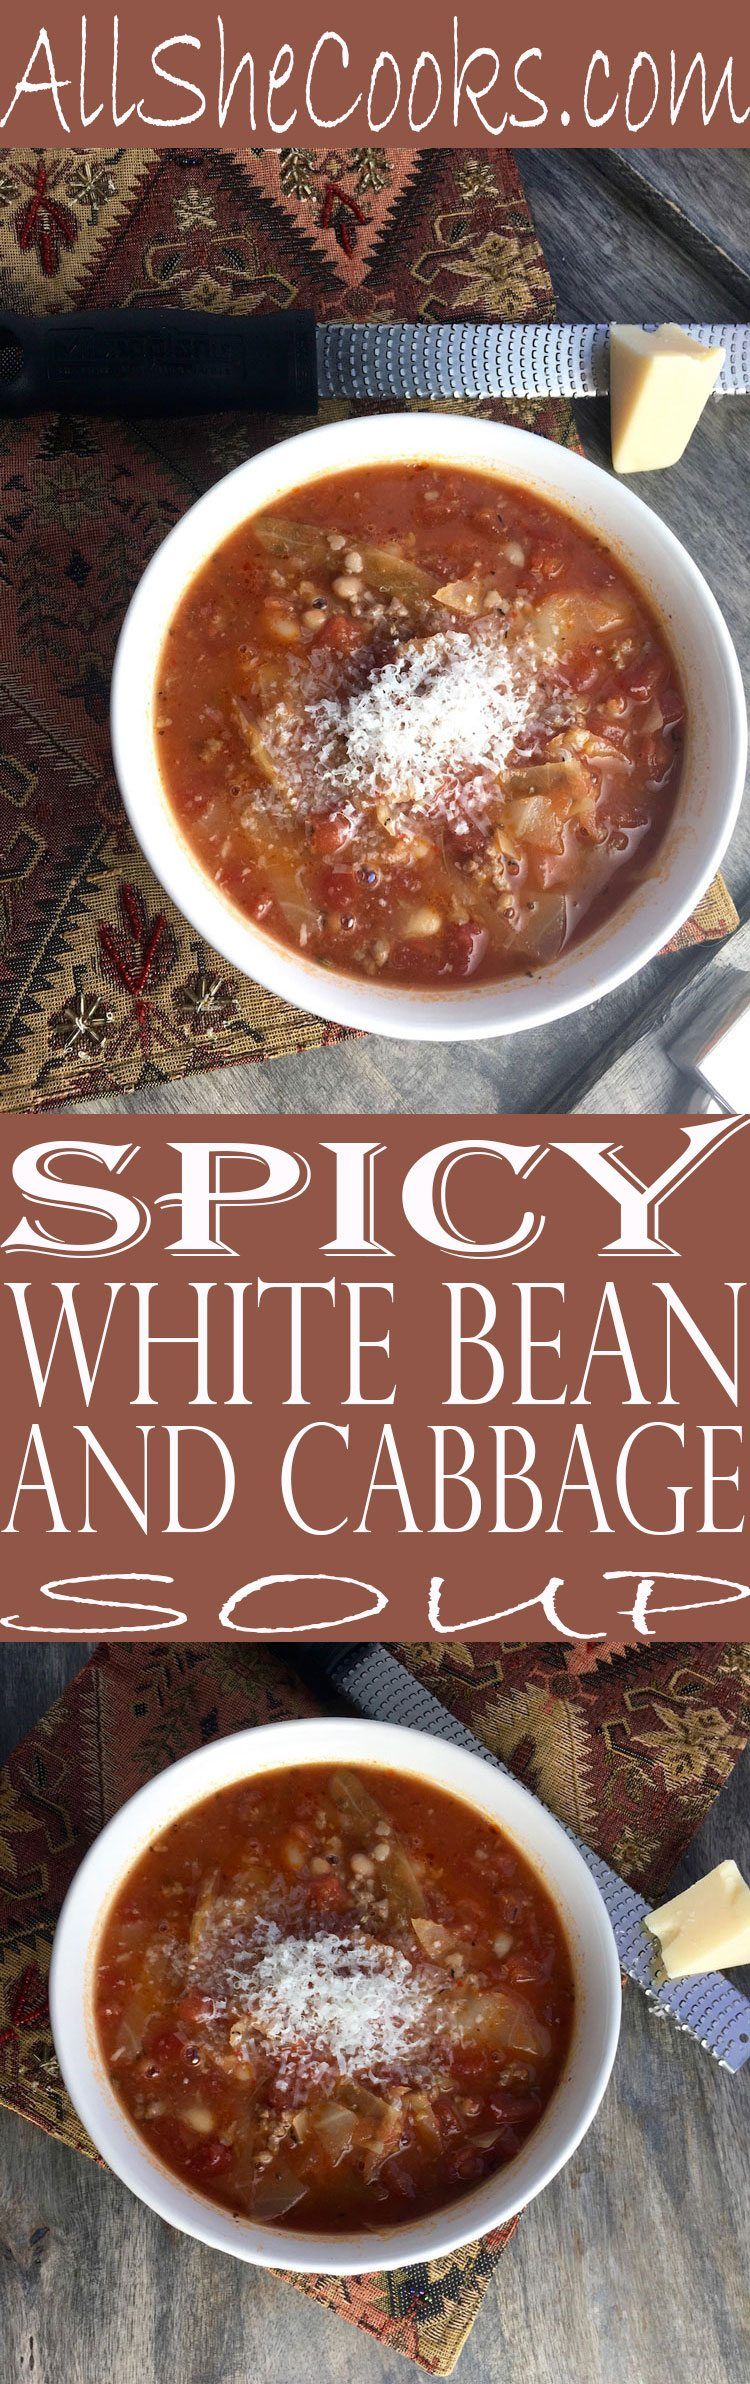 White Bean and Cabbage Soup weight loss soup. Delicious soup recipe with plenty of filling ingredients that make eating healthy easy.